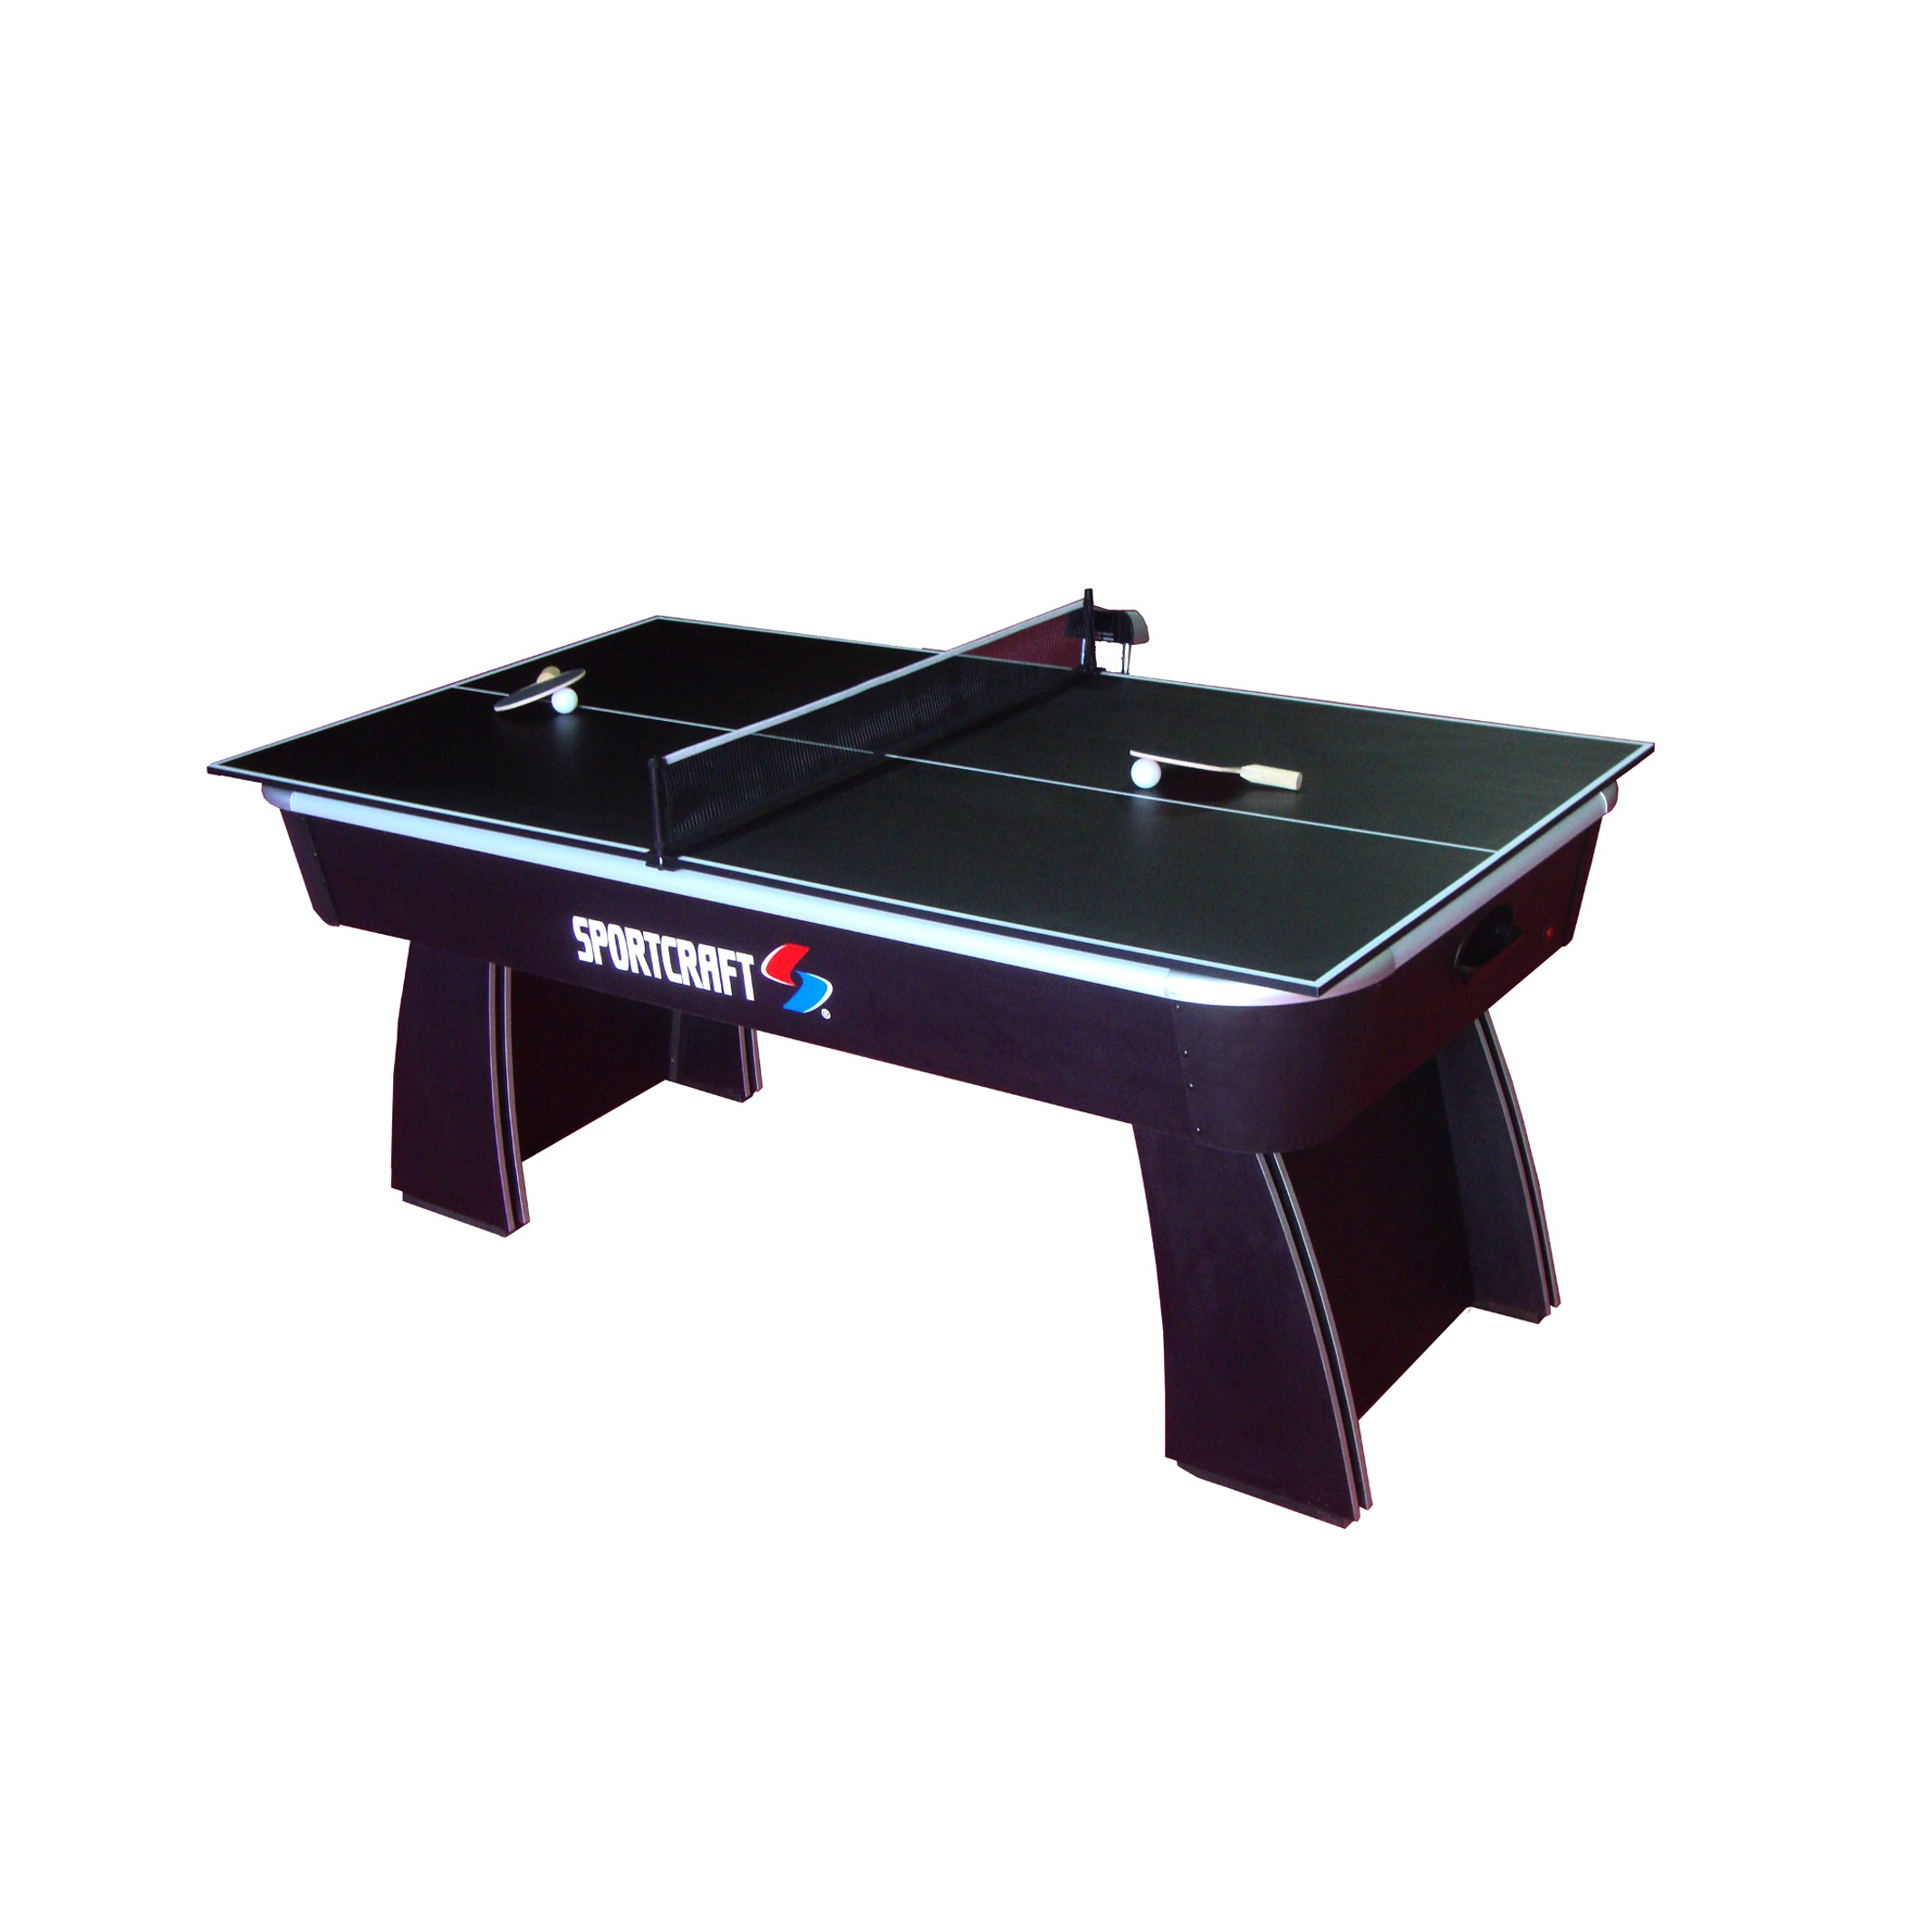 6-Air-hockey-table-with-Table-Tennis-Top